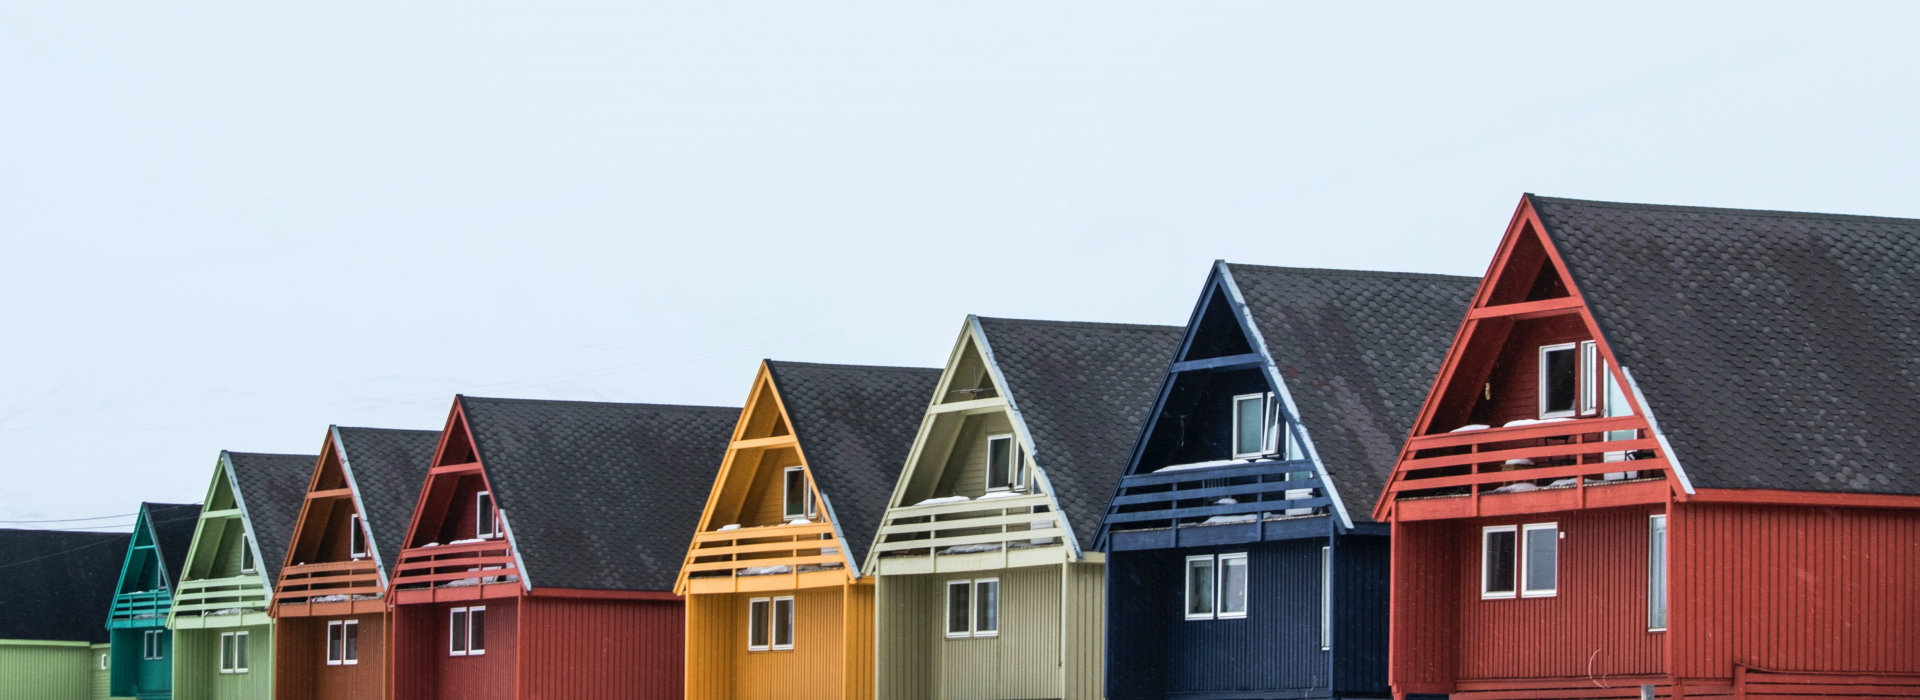 Colourful painted houses